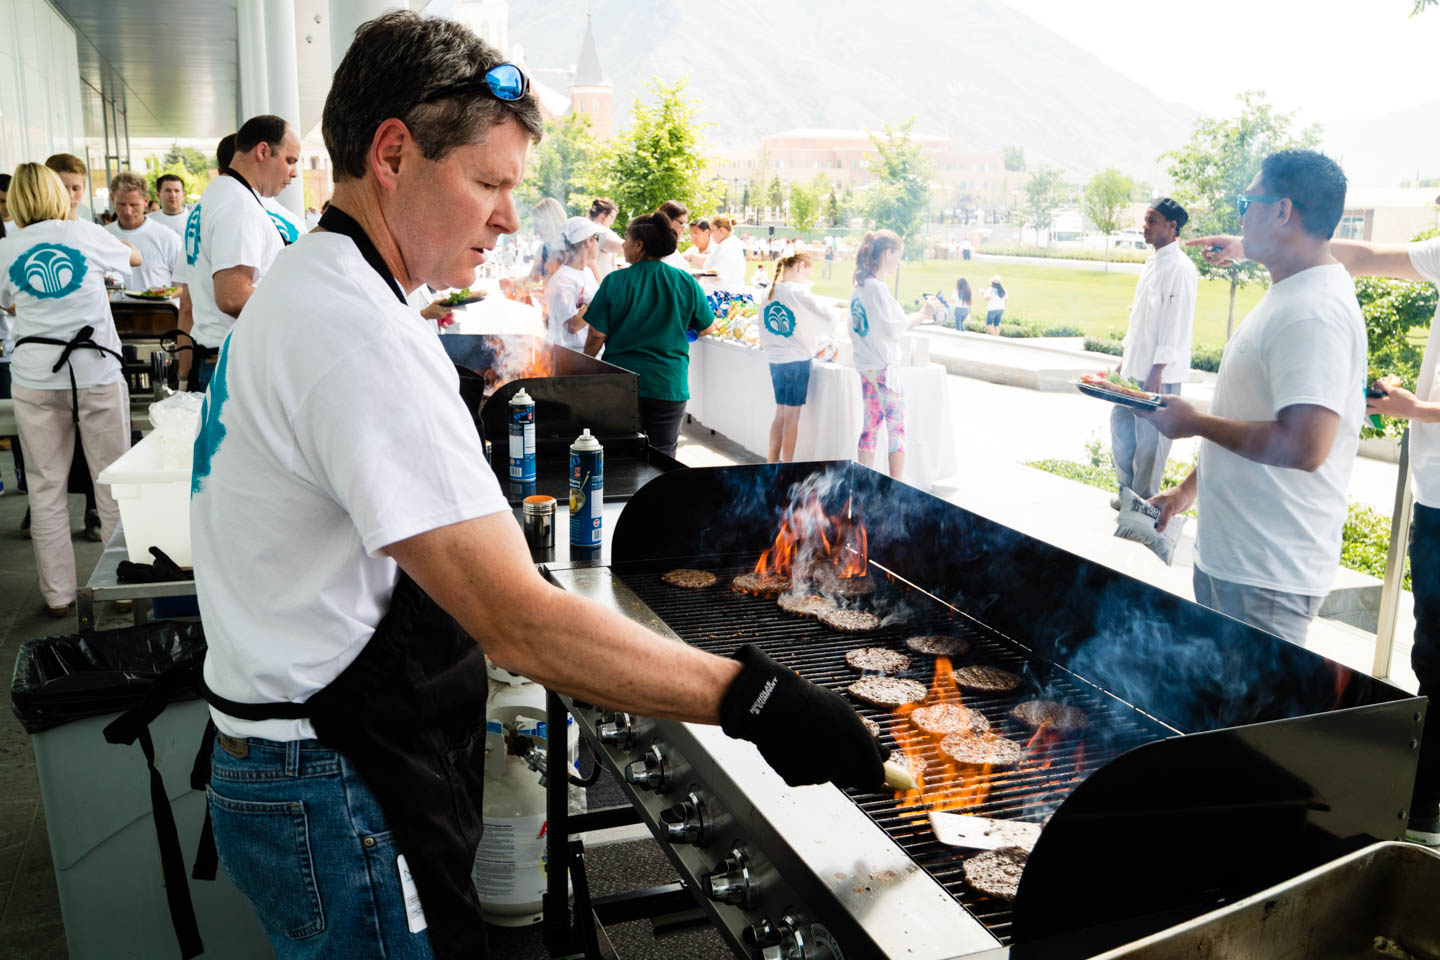 Making lunch for volunteers at the grill